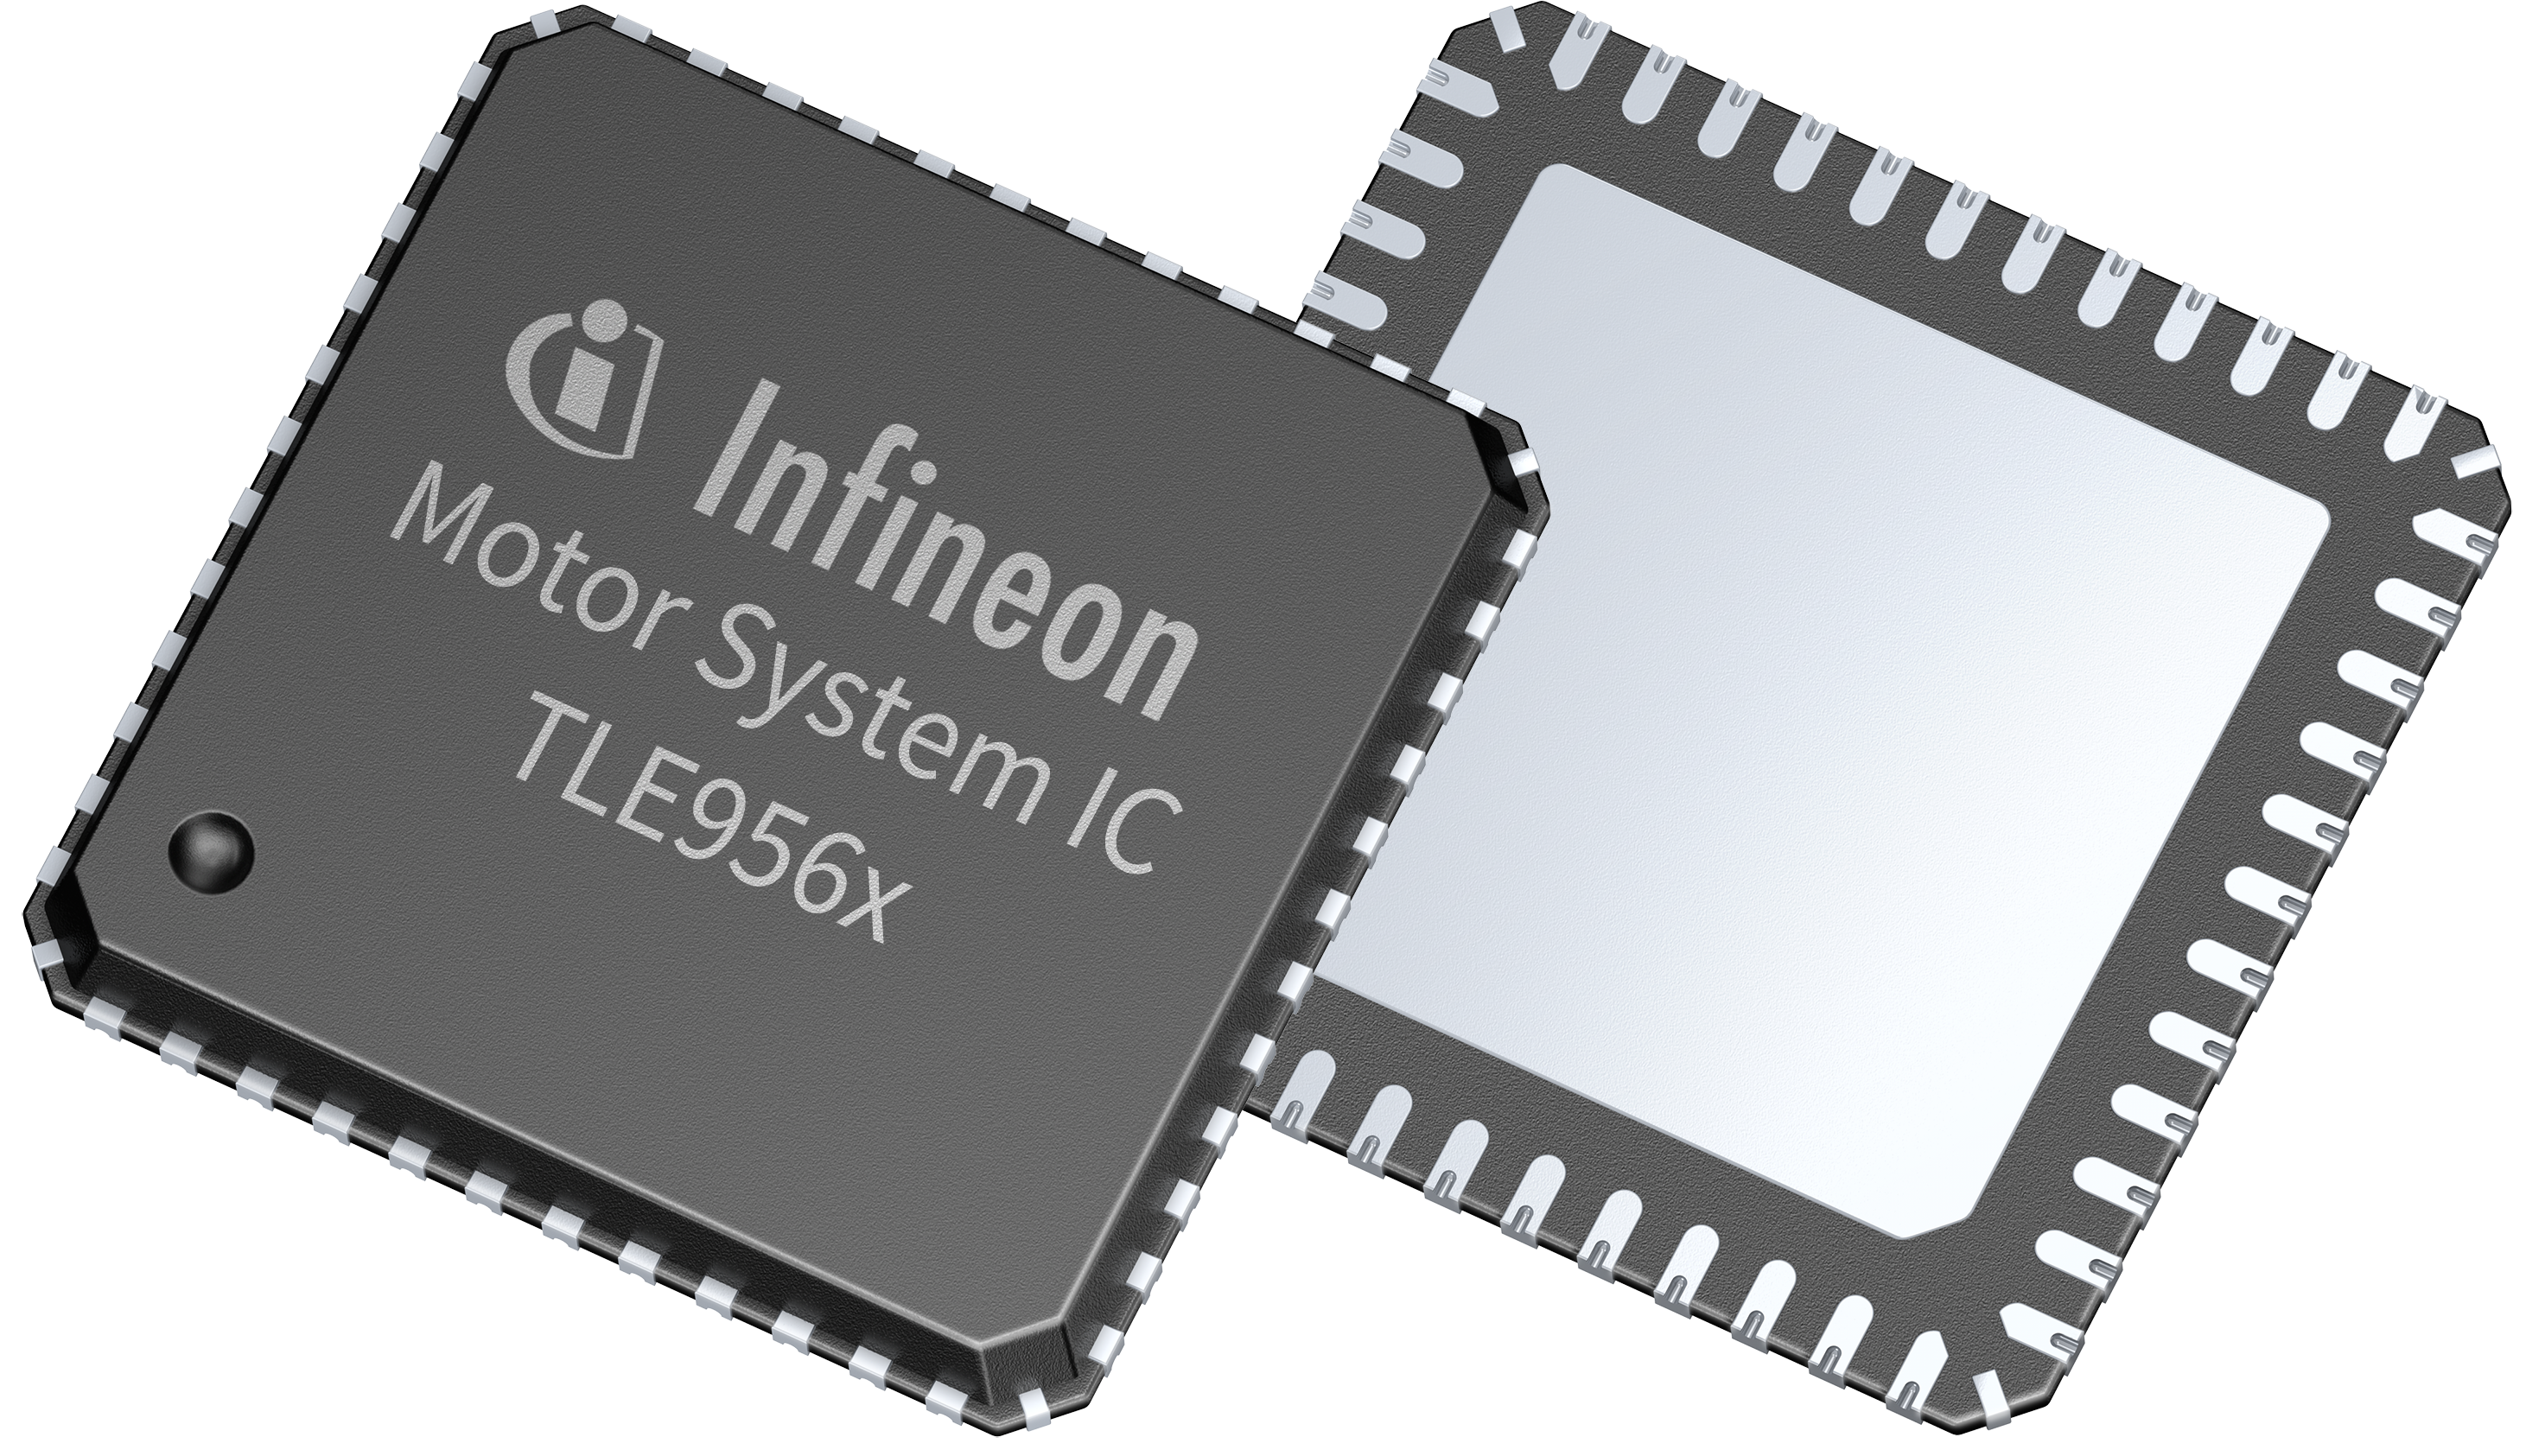 Motor System Ics From Infineon For Control Of Small Electric Motors In Cars Offer A Completely New Level Of Integration Electronics Maker